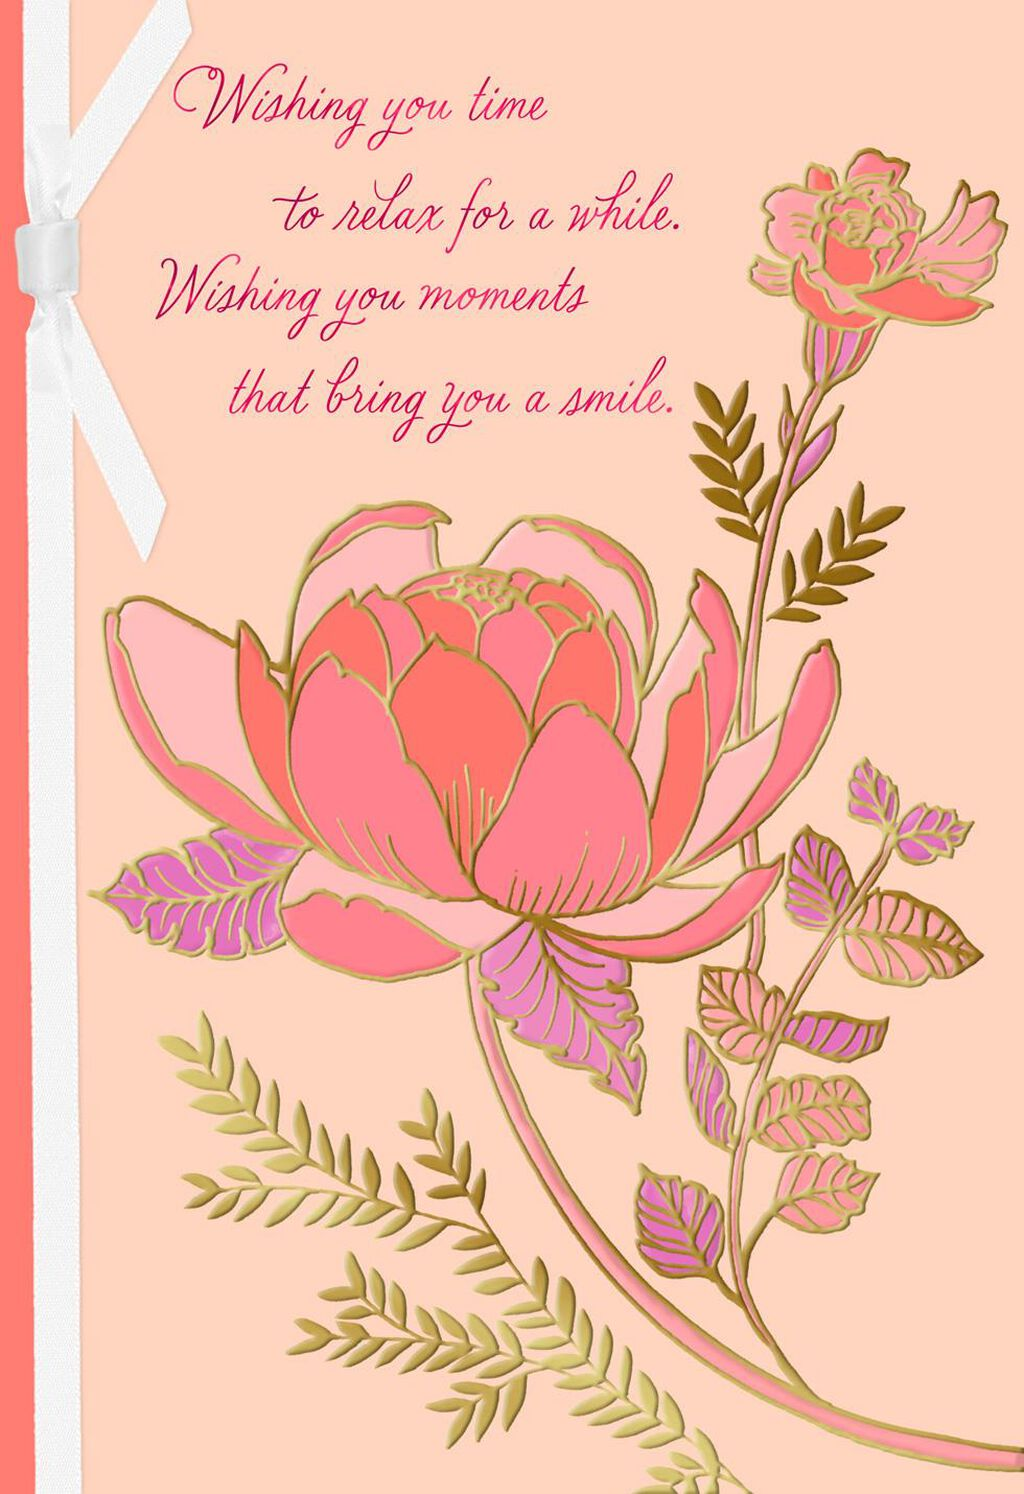 Wishes For You Pink Flowers Birthday Card Greeting Cards Hallmark